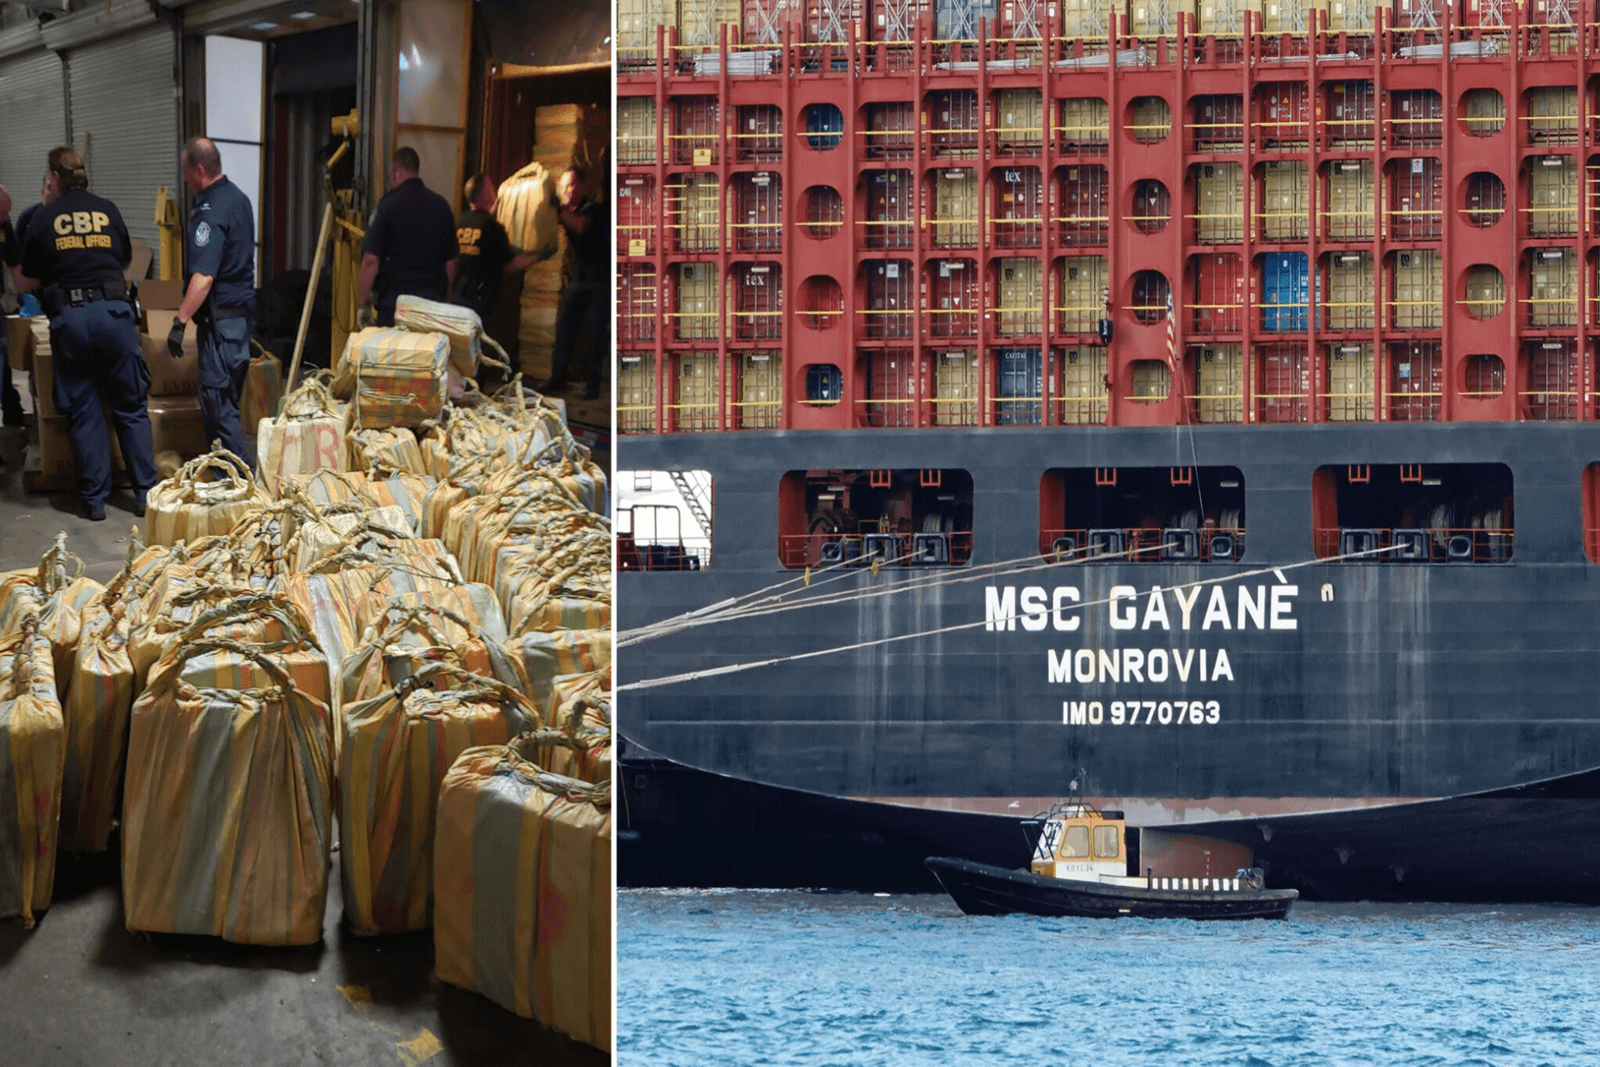 How shipping giant MSC reacted to billion-dollar cocaine bust